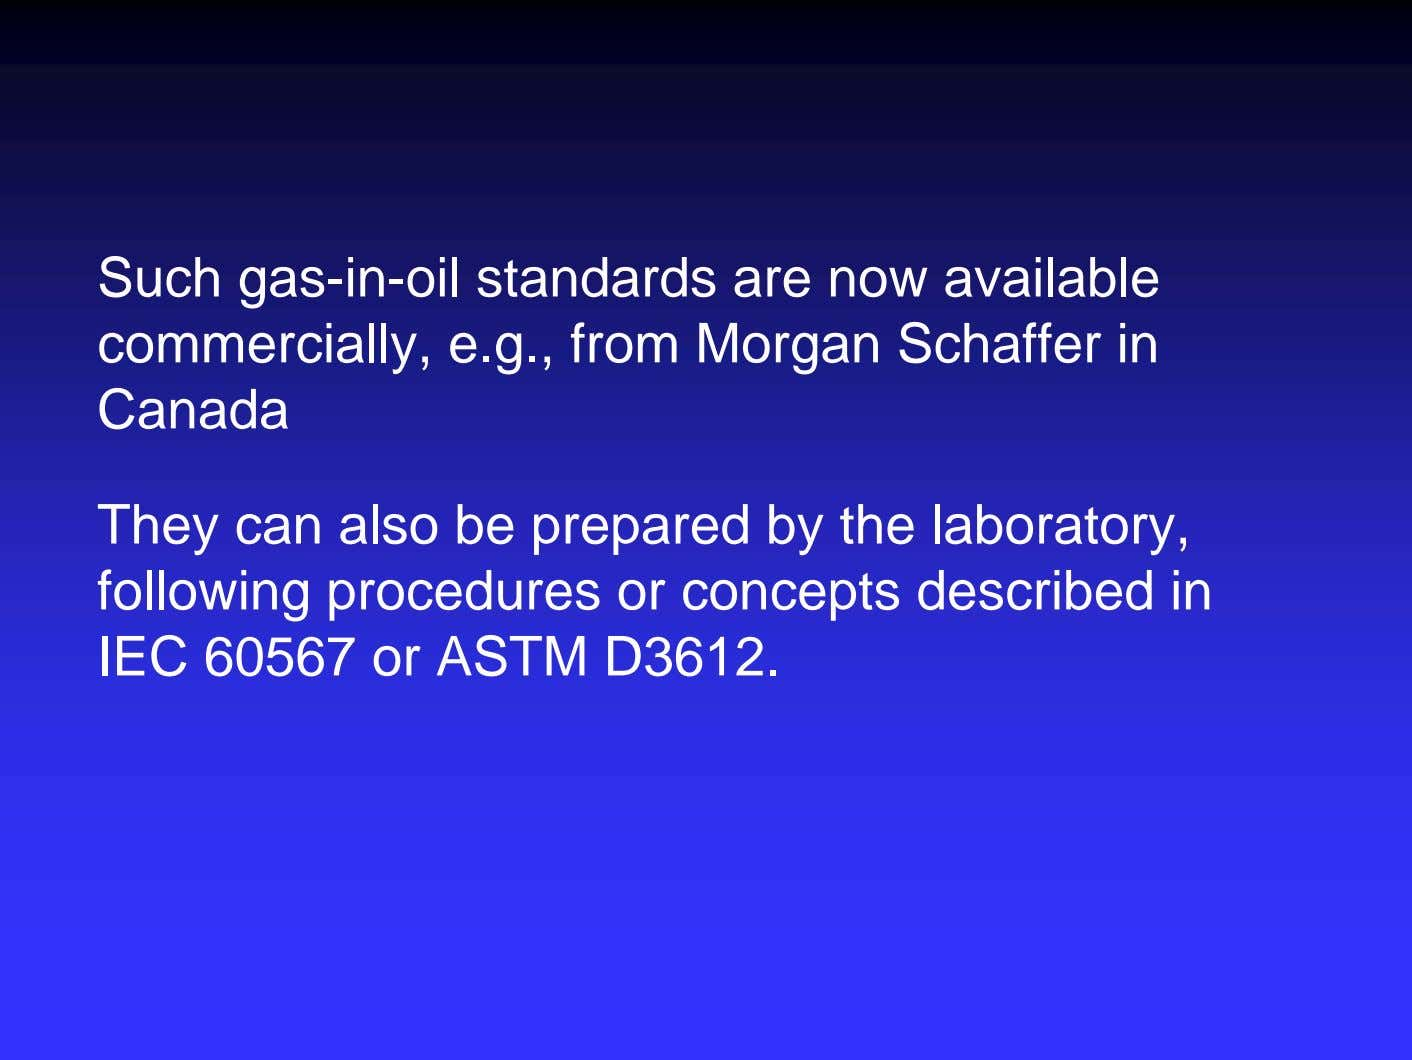 Such gas-in-oil standards are now available commercially, e.g., from Morgan Schaffer in Canada They can